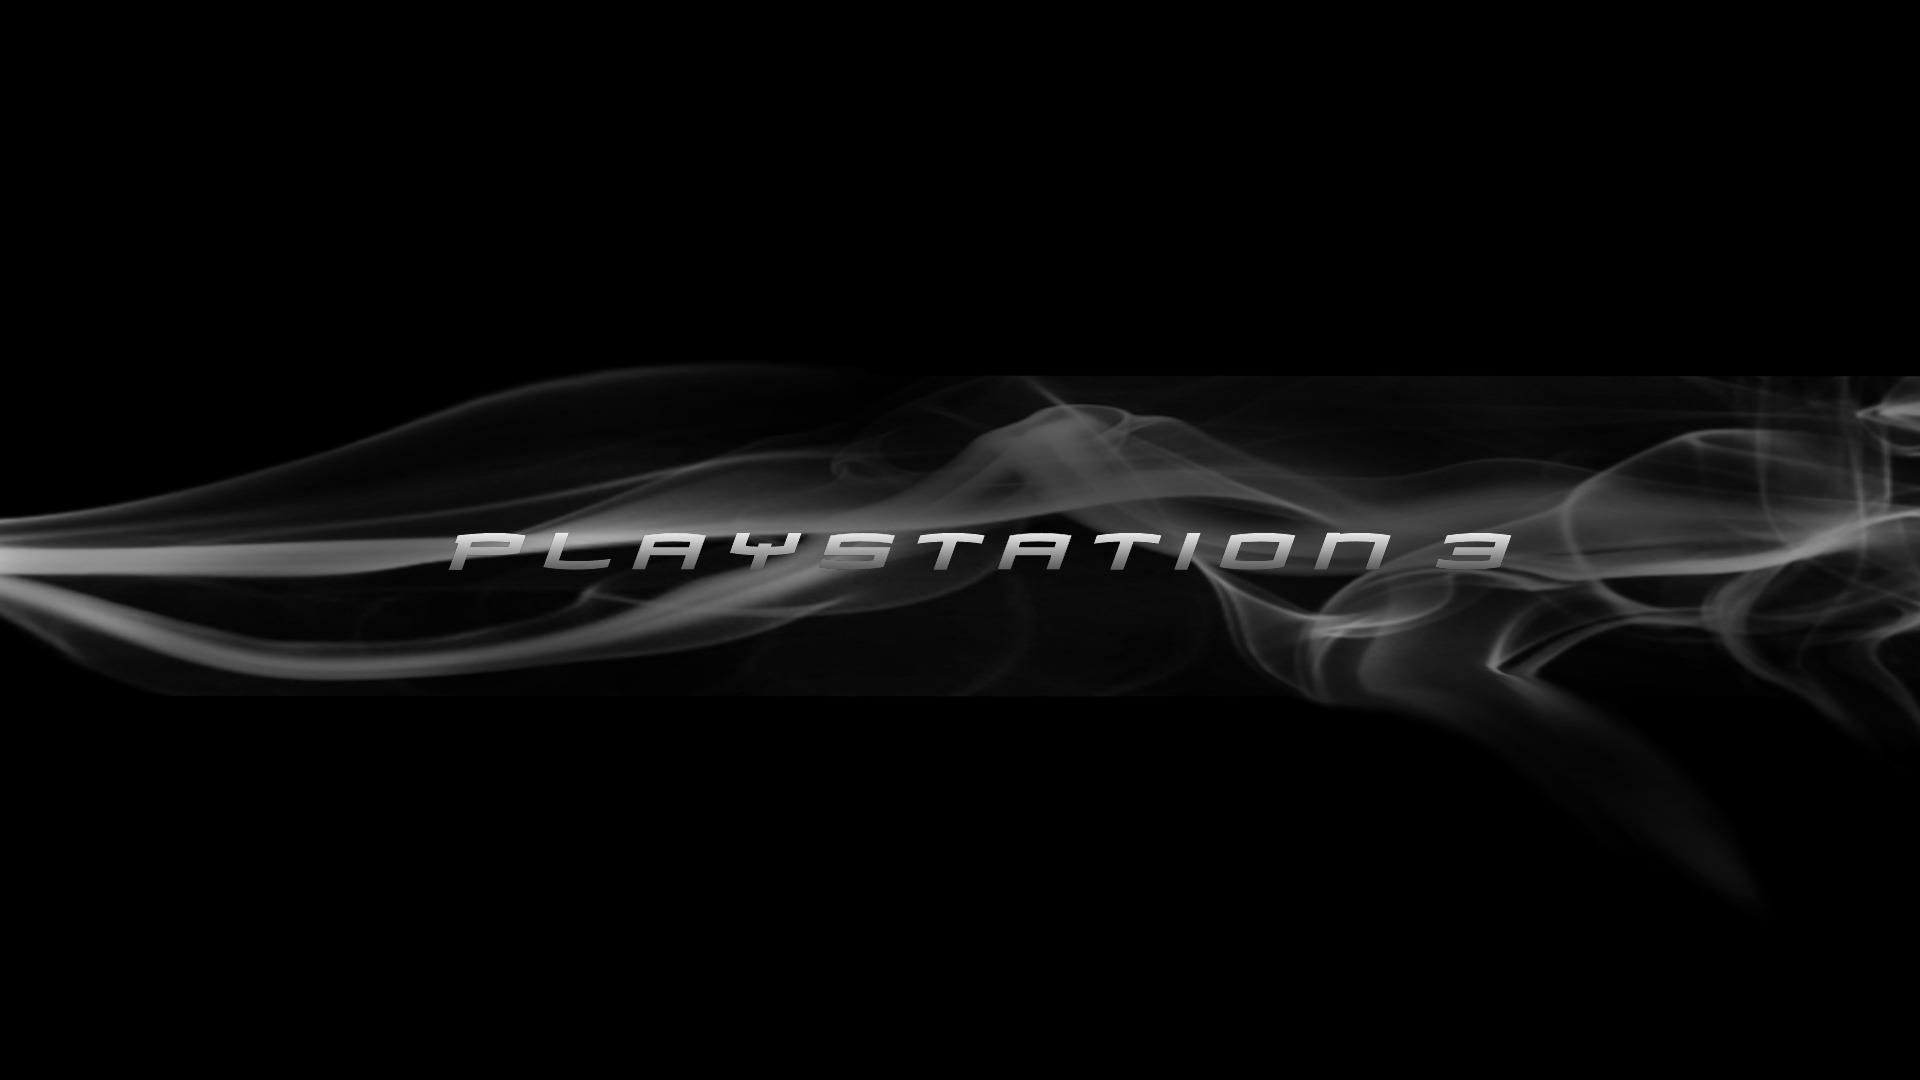 PS3 Logo with Smoke Wallpapers